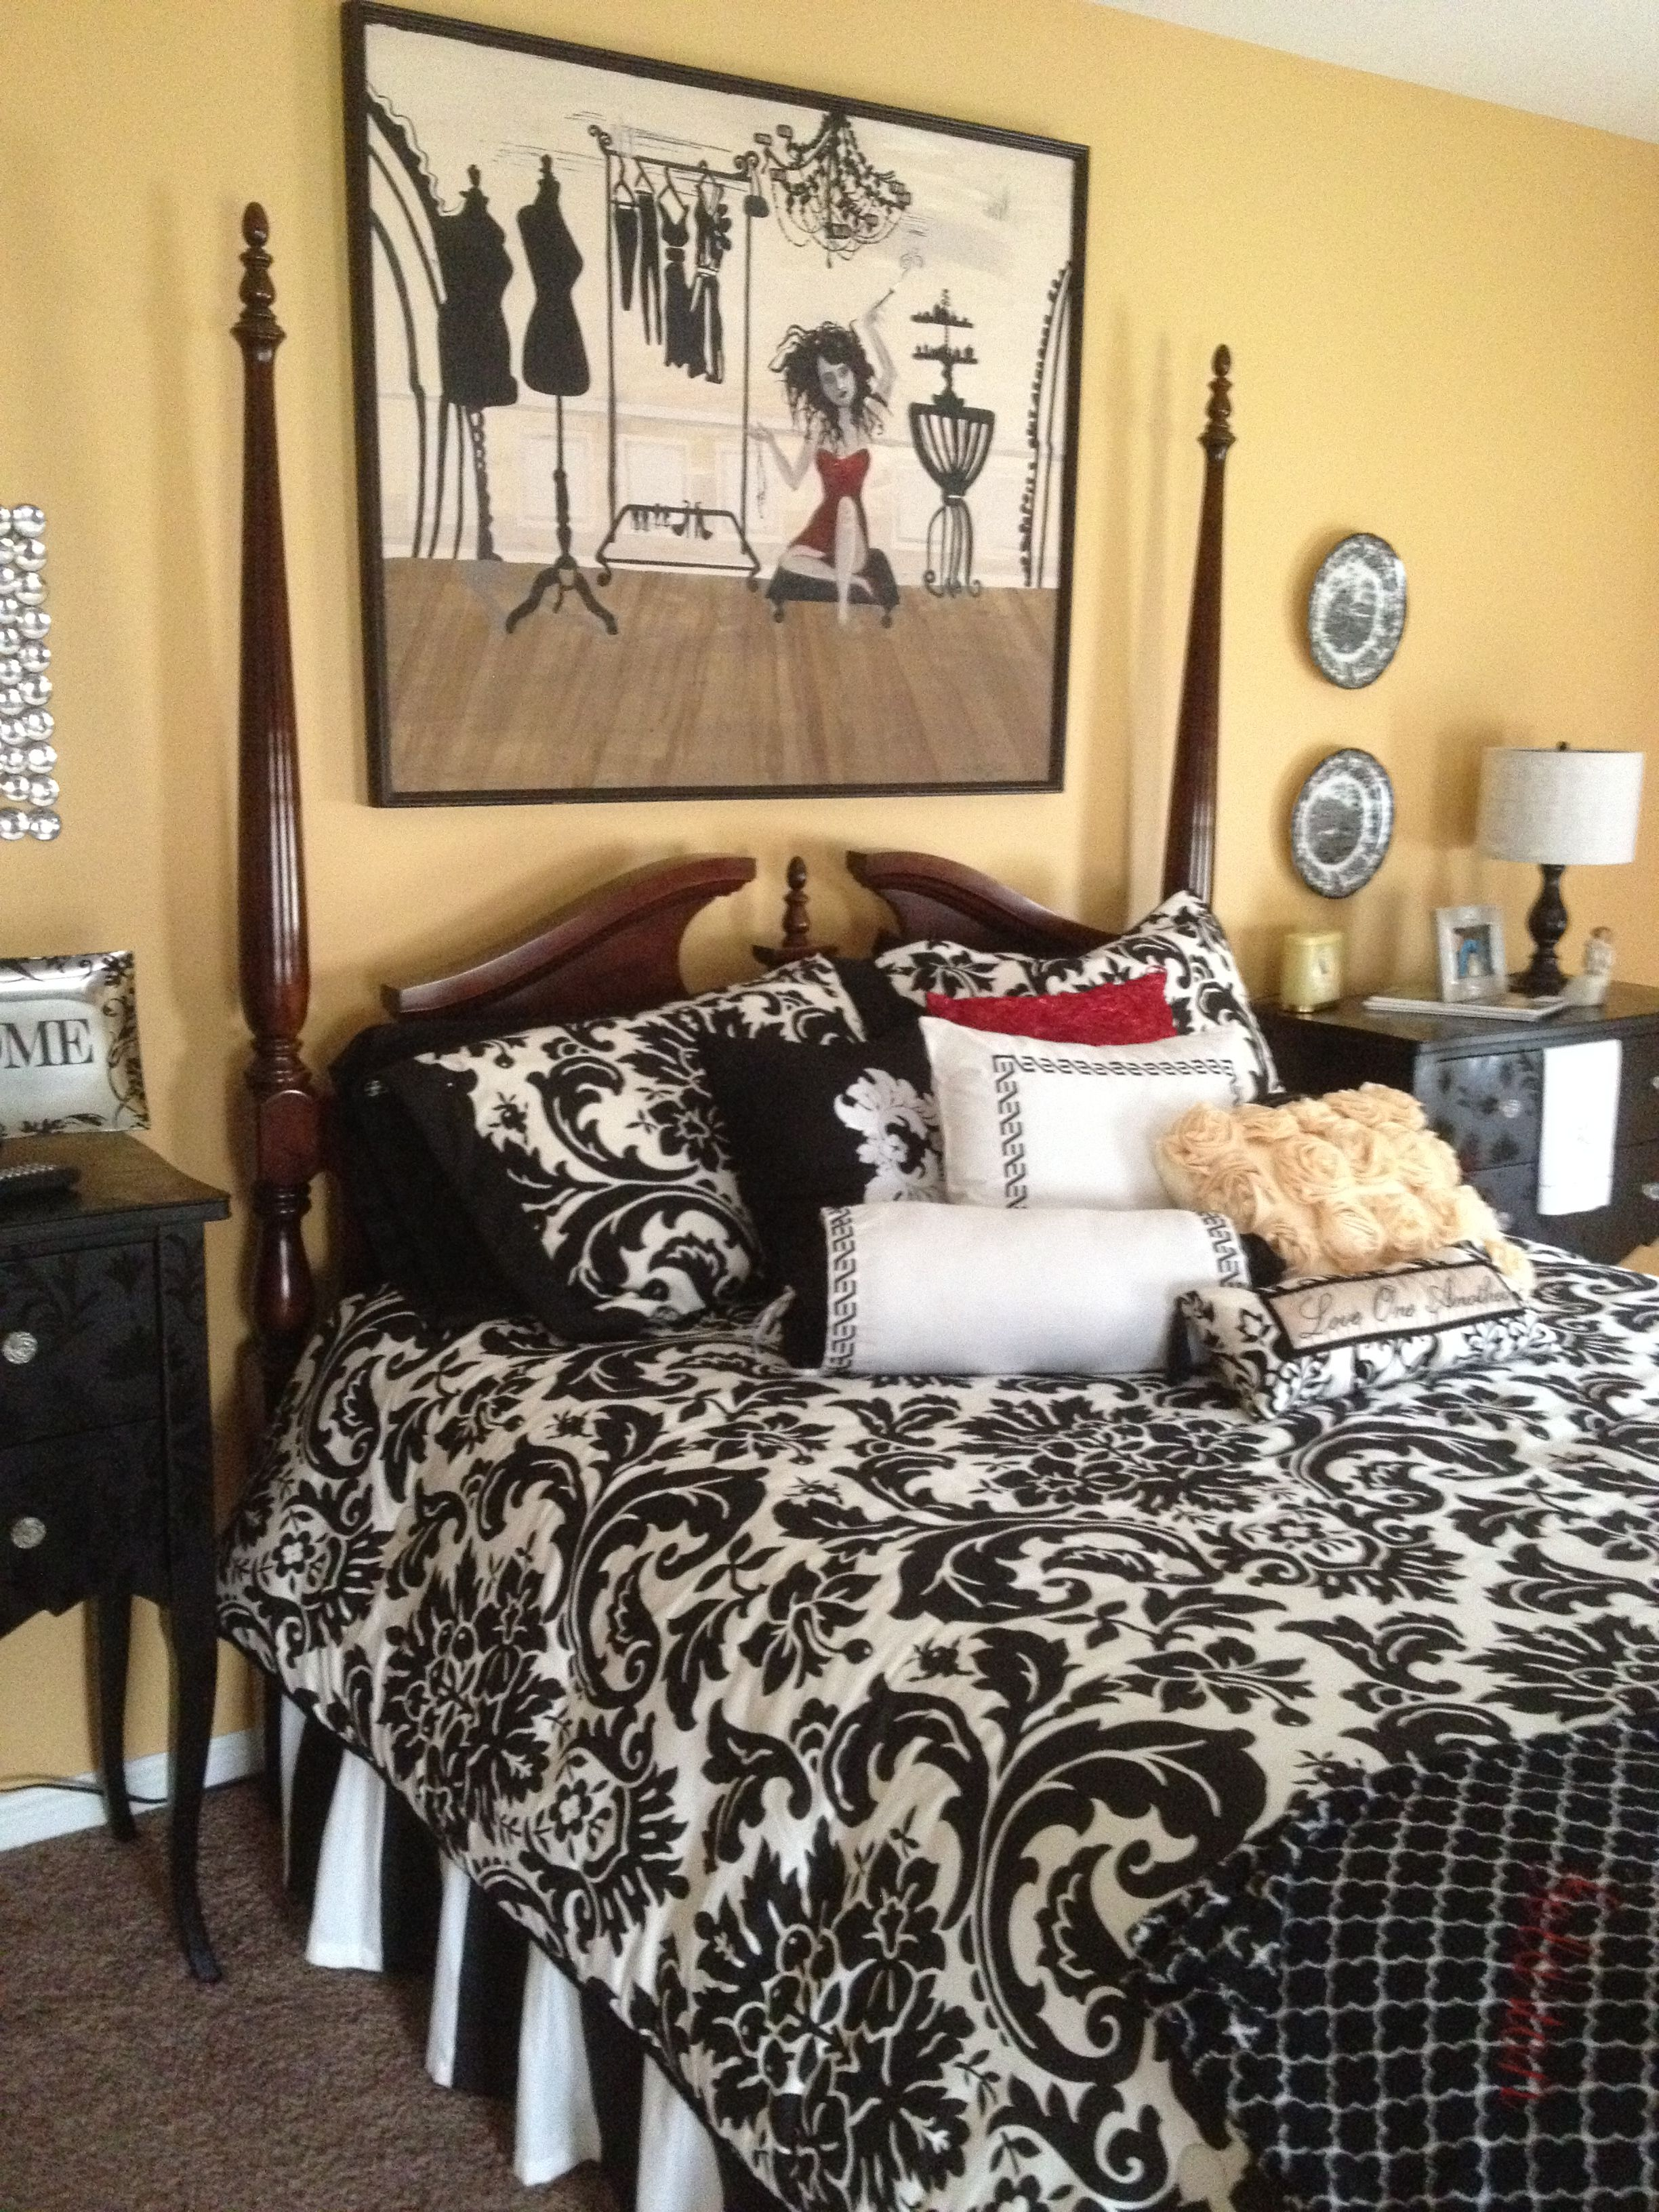 Love the colors! Pretty bedroom =) Black and white bedding